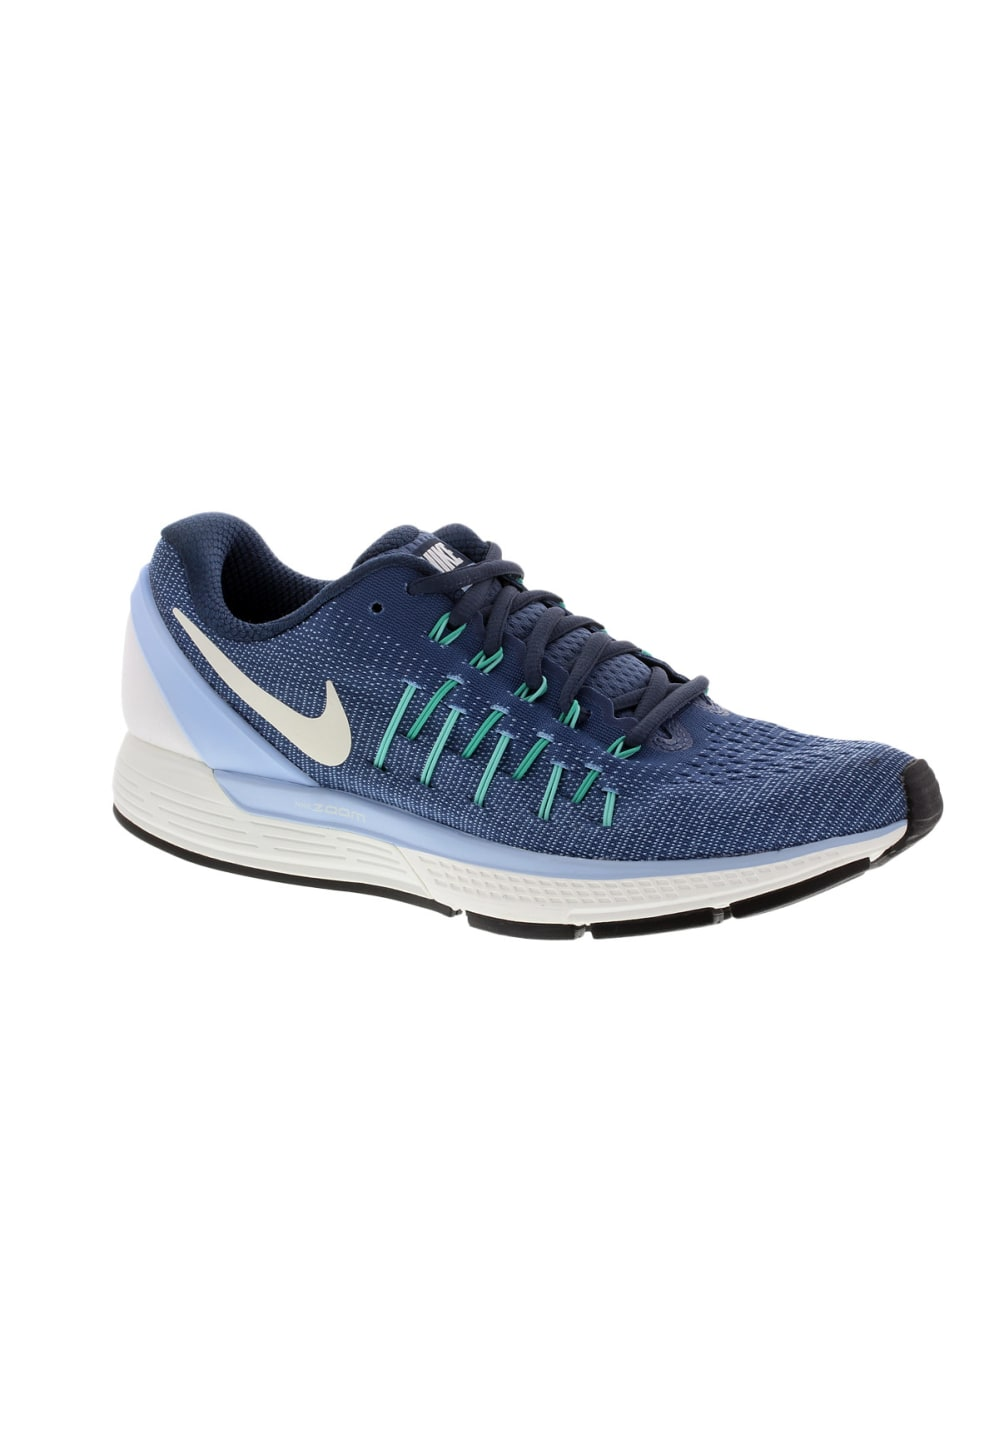 2 Chaussures Running Pour Zoom Air Odyssey Femme Nike Bleu g7y6IbvYf